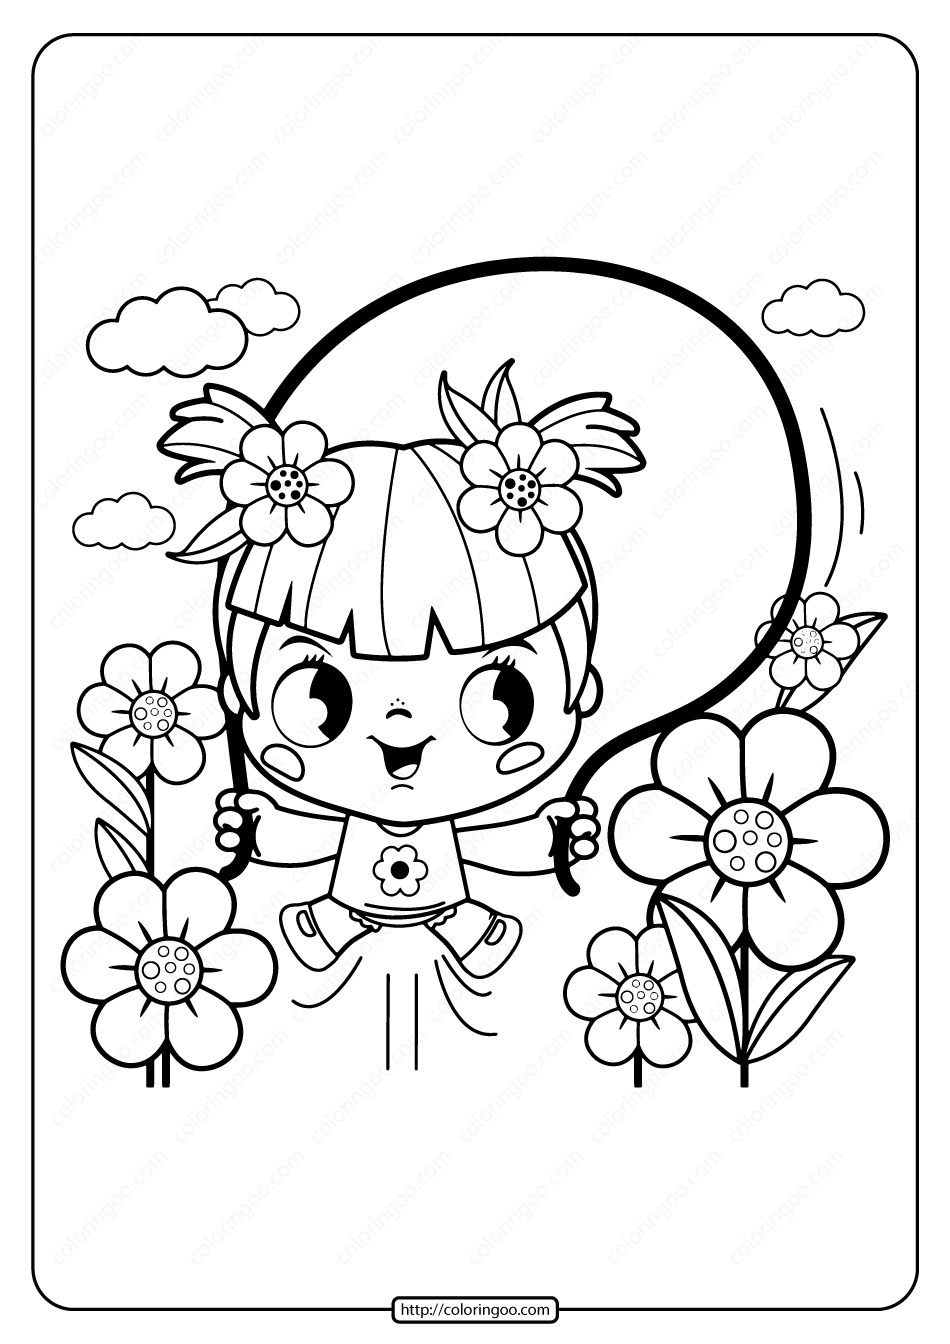 Printable Girl Playing Jump Rope Coloring Page